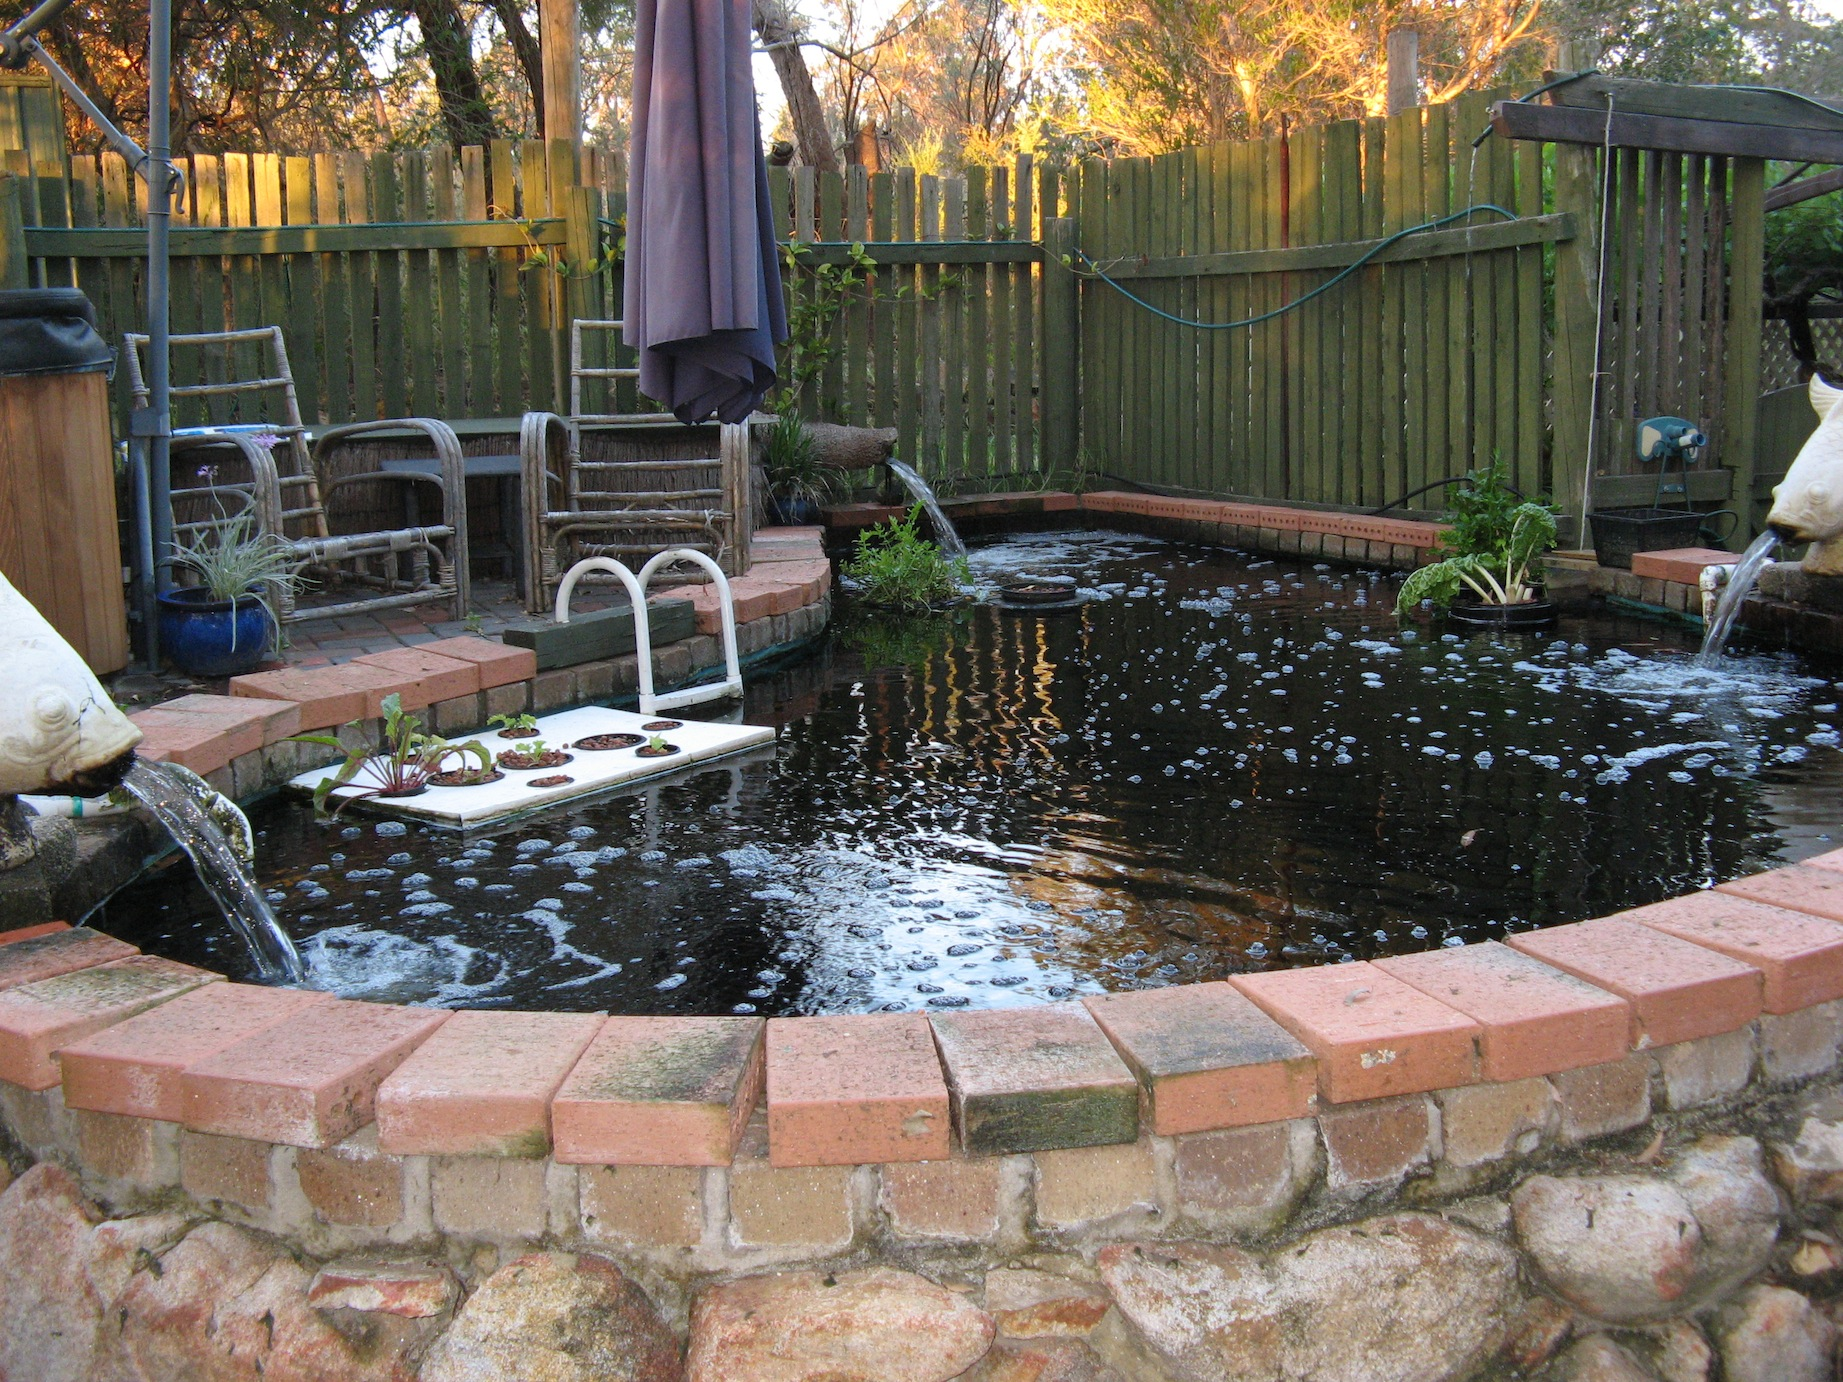 Swimming pool conversion mccarthy park for Koi pond swimming pool conversion